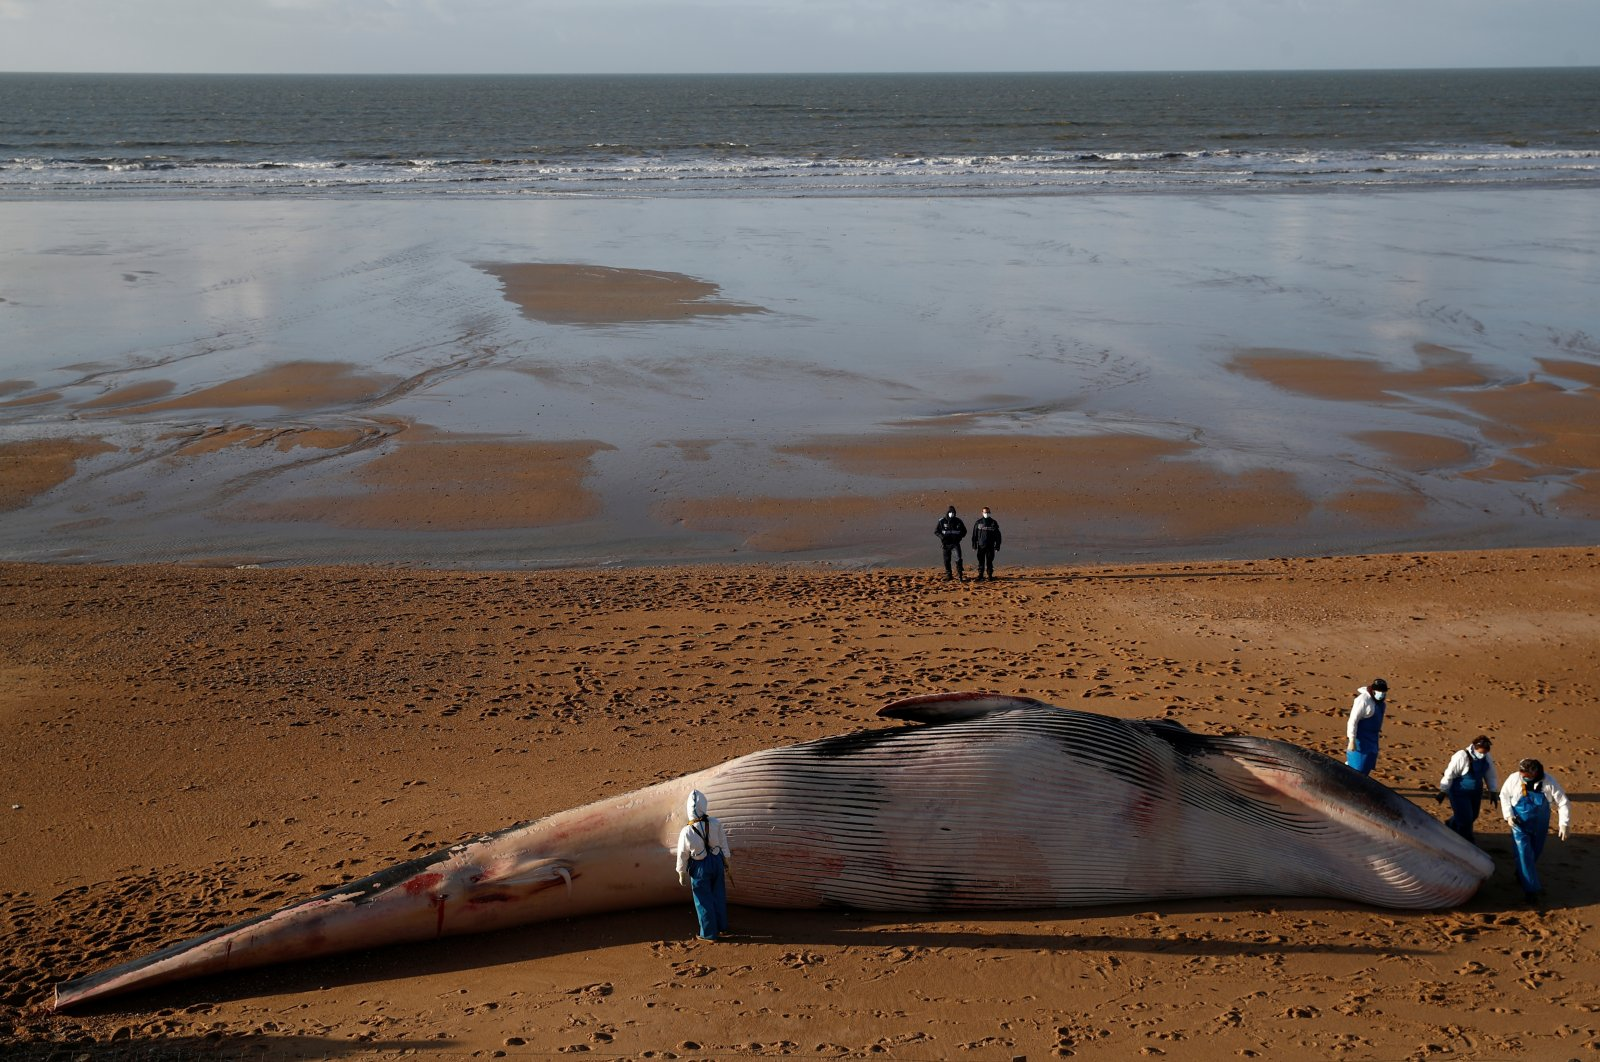 Experts at the Observatoire Pelagis examine the dead body of a fin whale which was found stranded on a beach in Saint-Hilaire-de-Rietz, France, Nov. 16, 2020. (Reuters Photo)